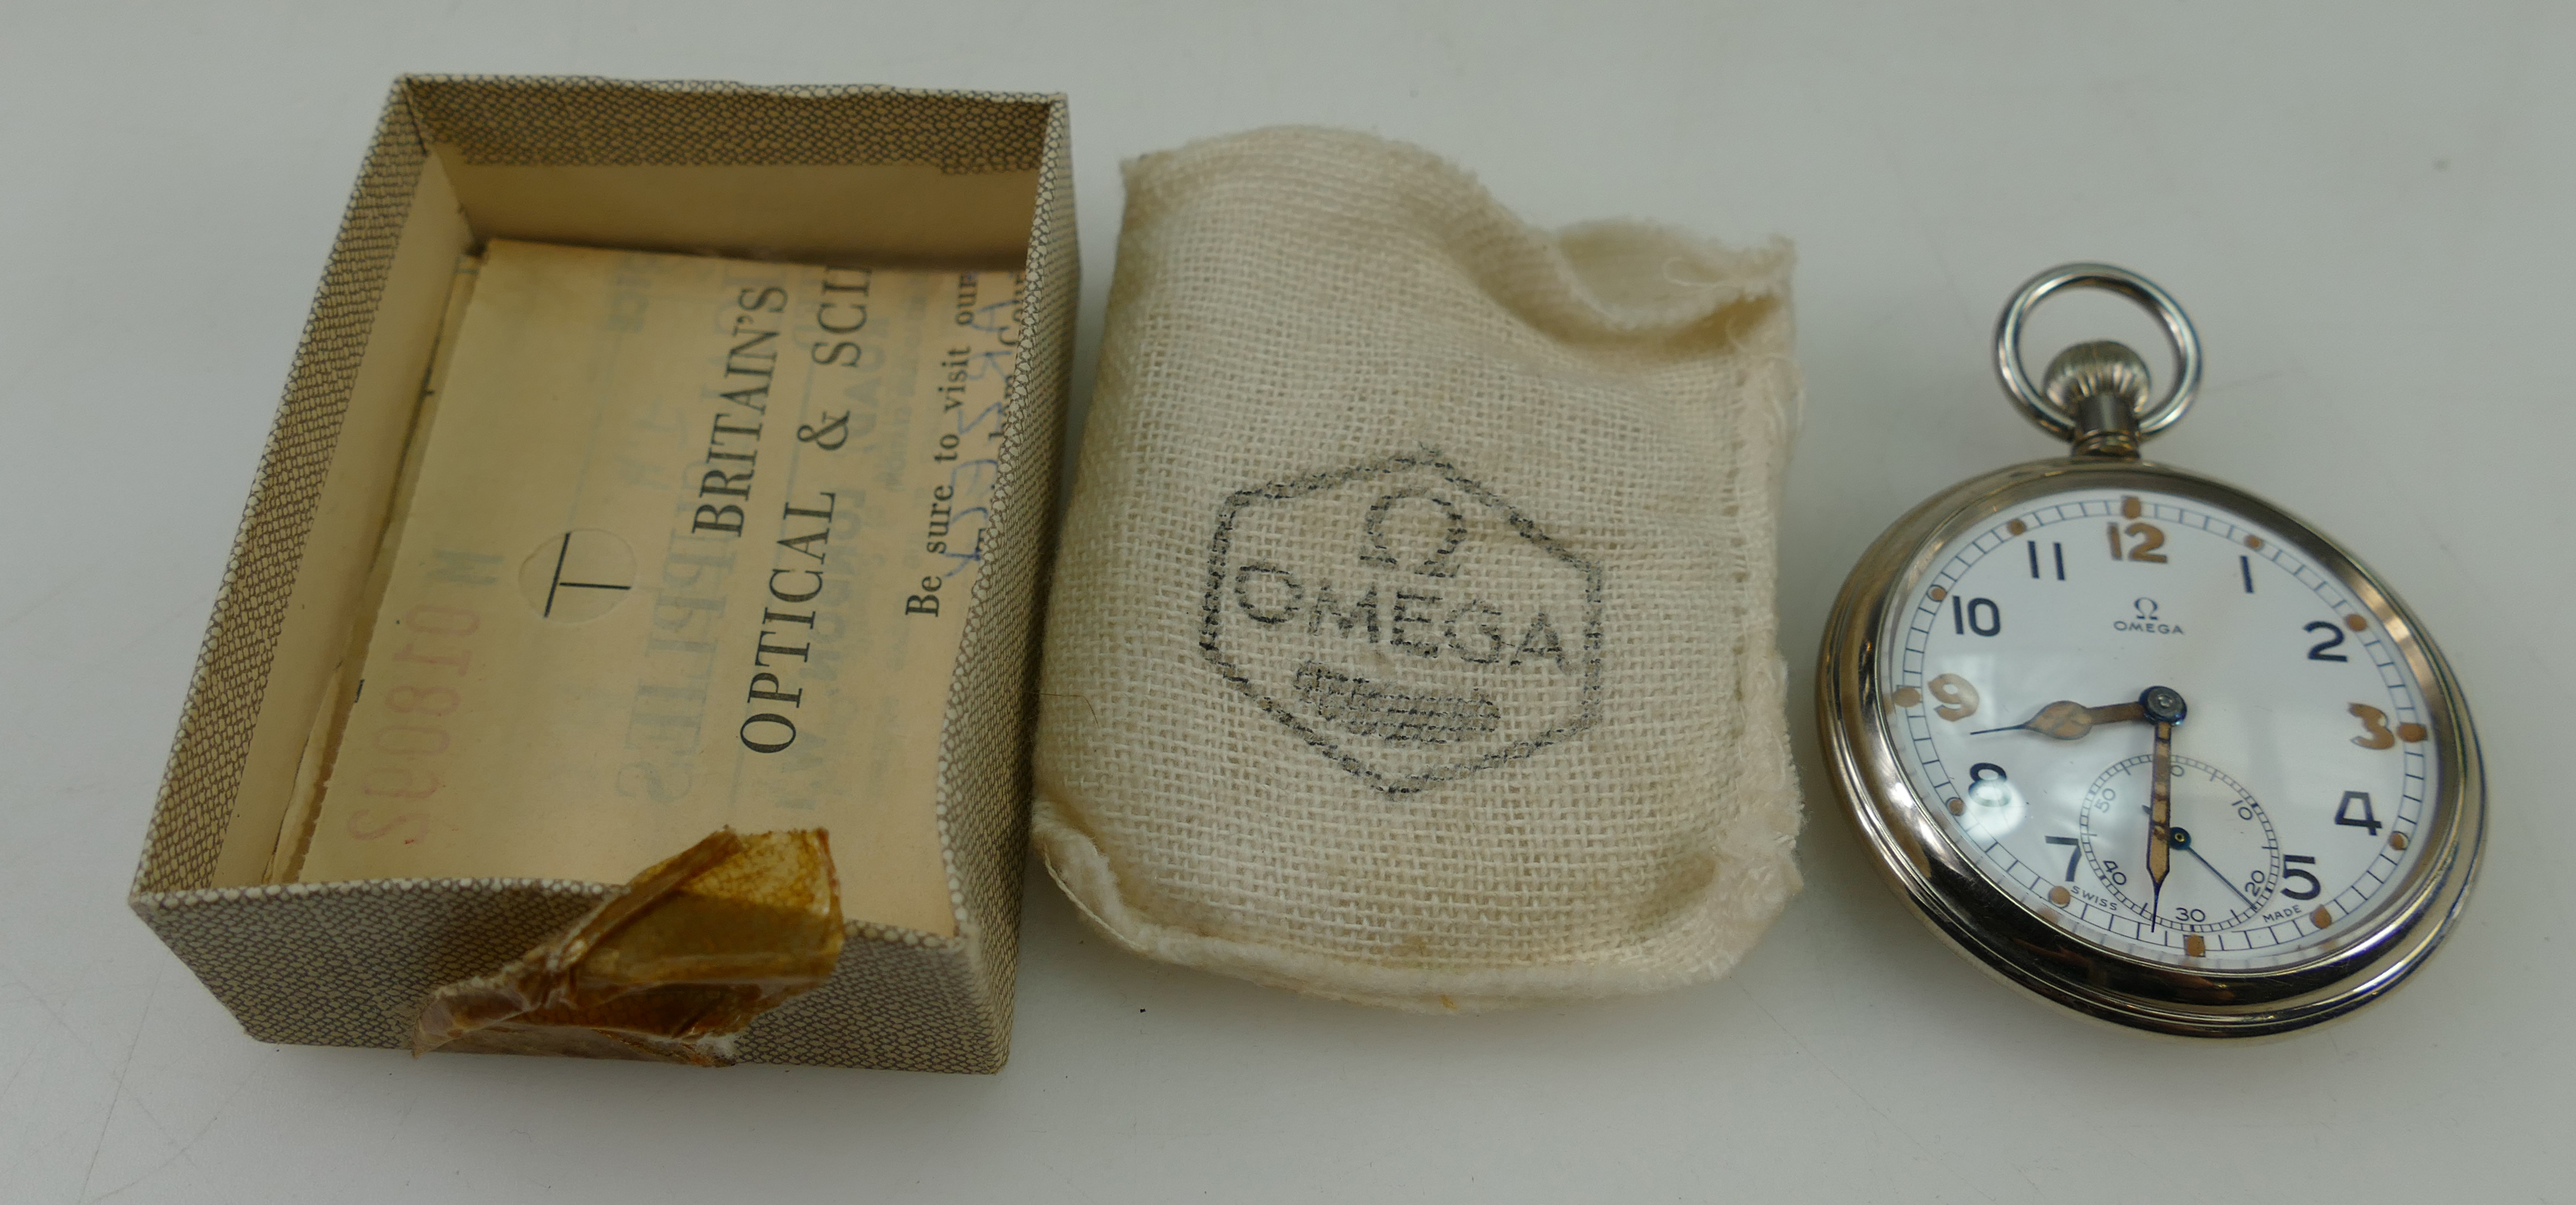 This Omega pocket watch steel with original packaging raised £130 at auction (A1706,lot 1454)